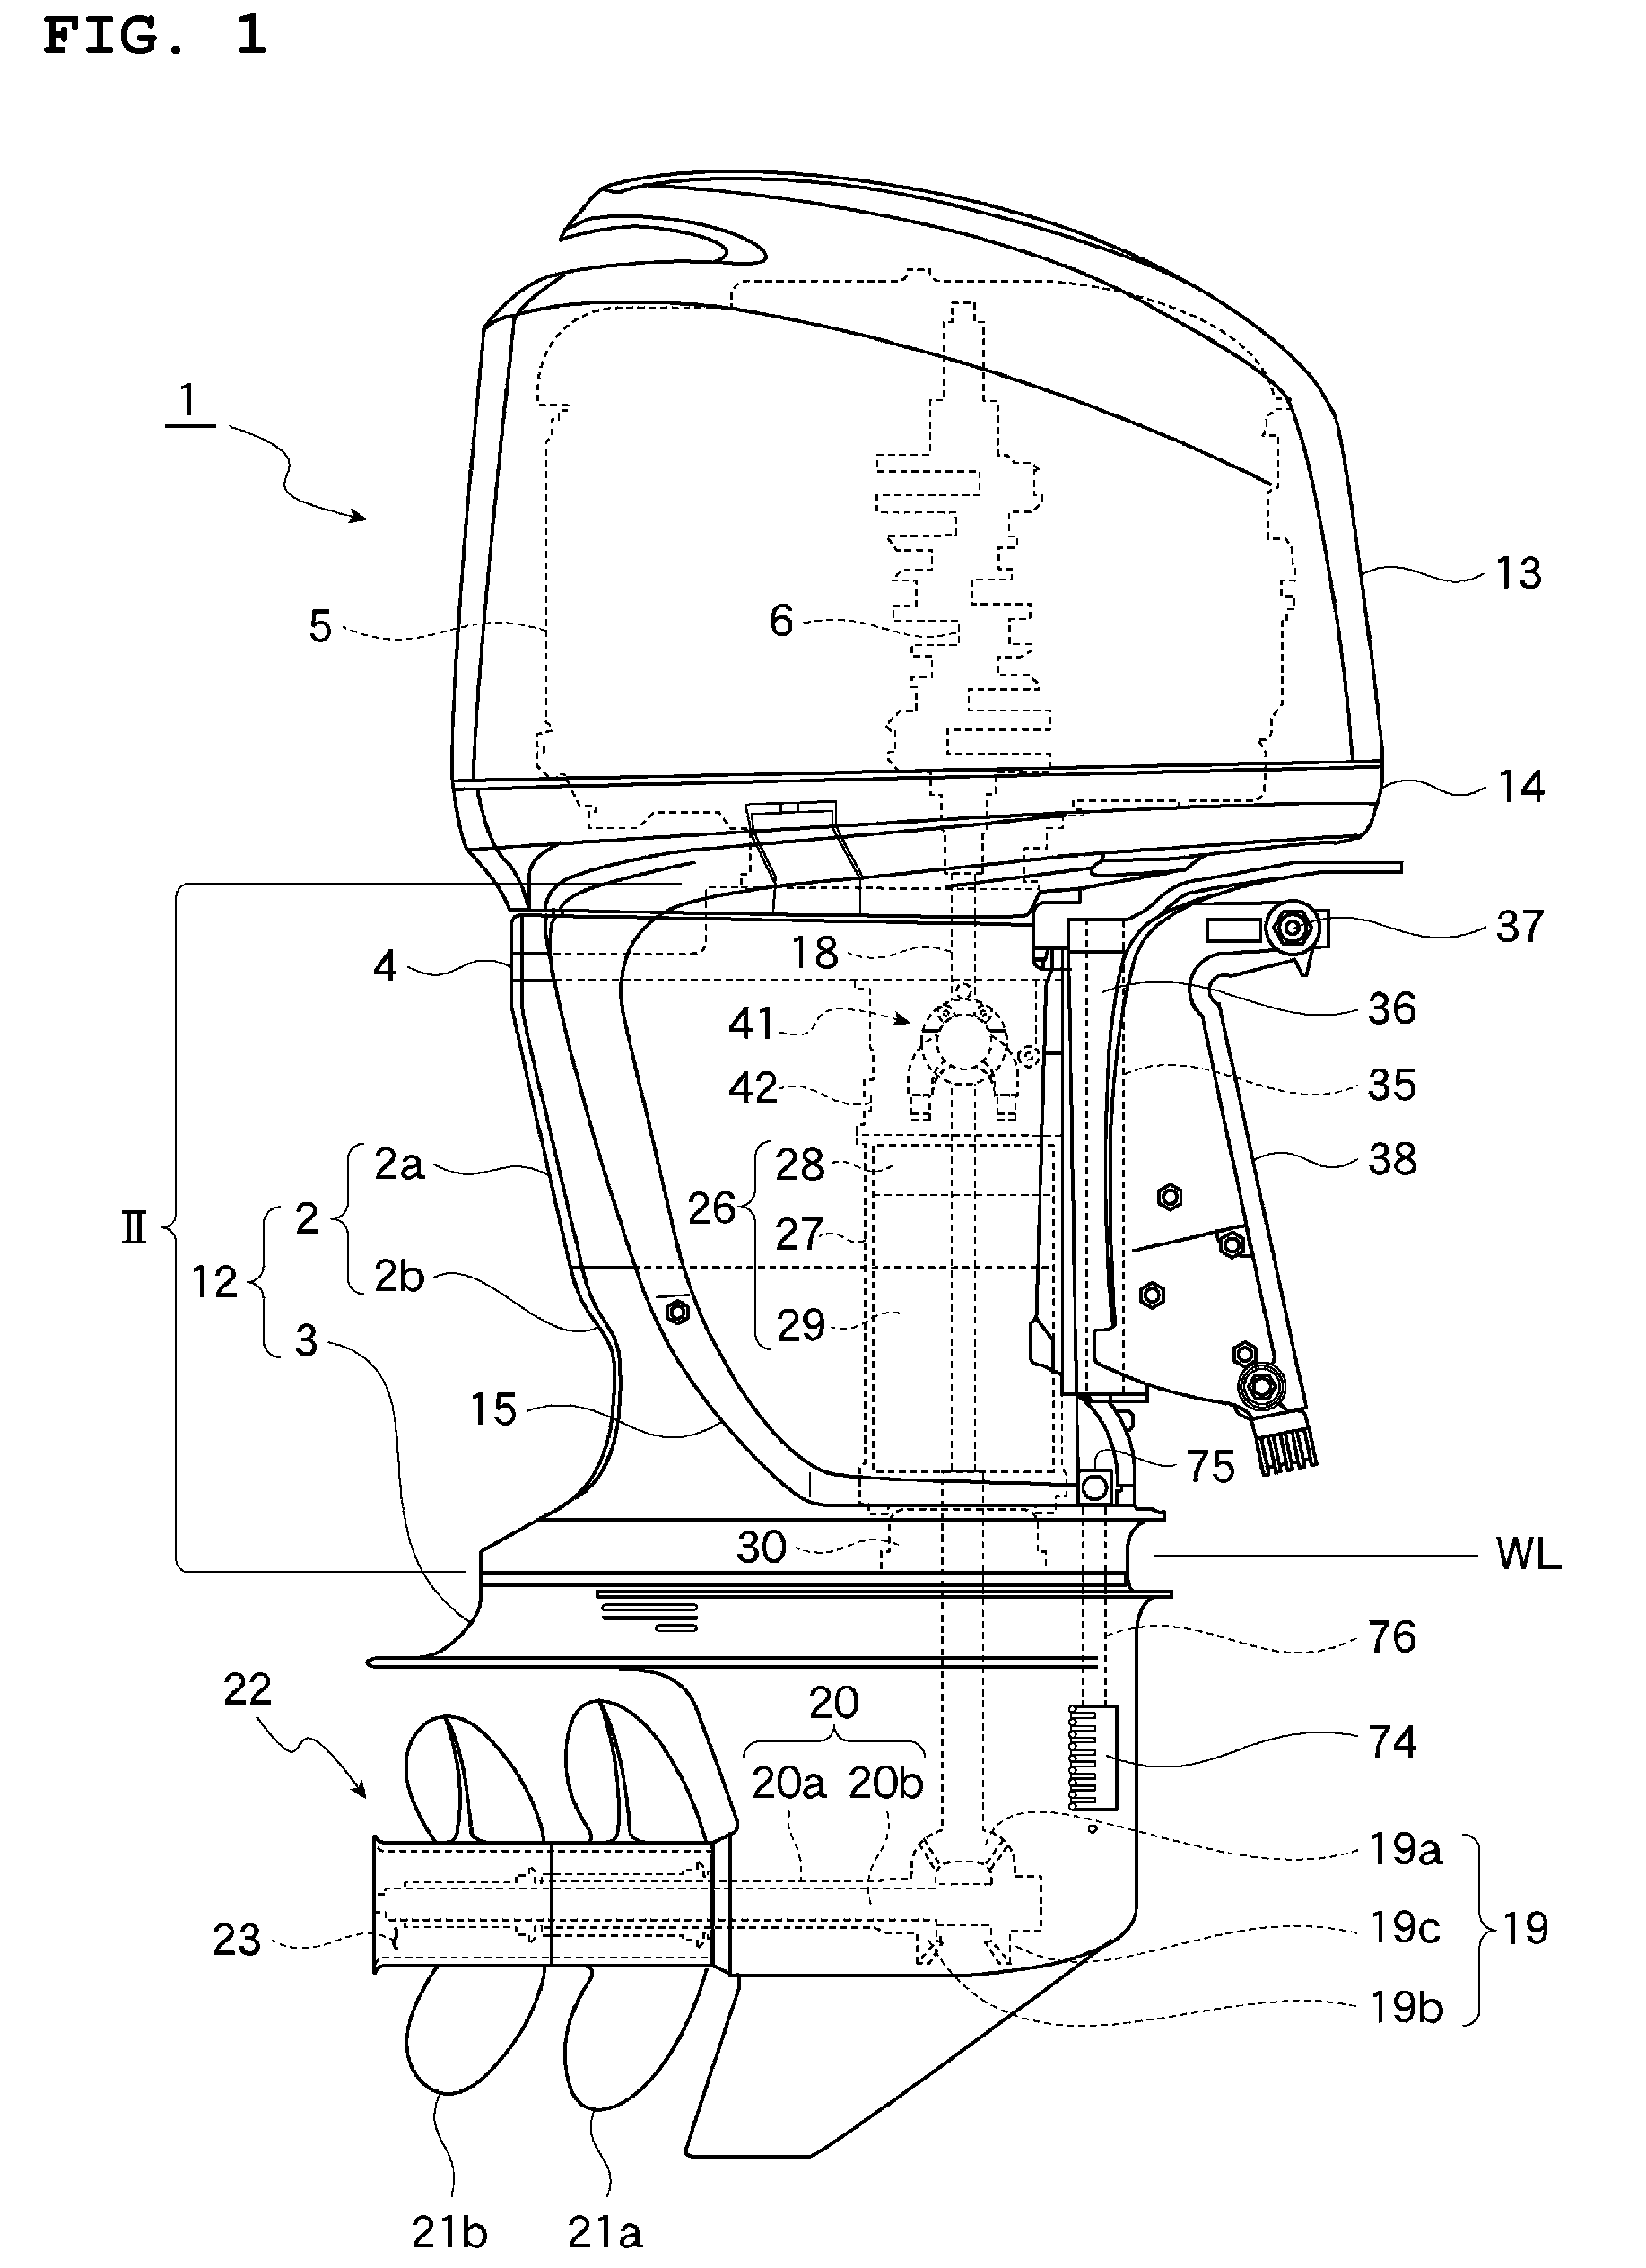 patent us20090163094 outboard motor google patents